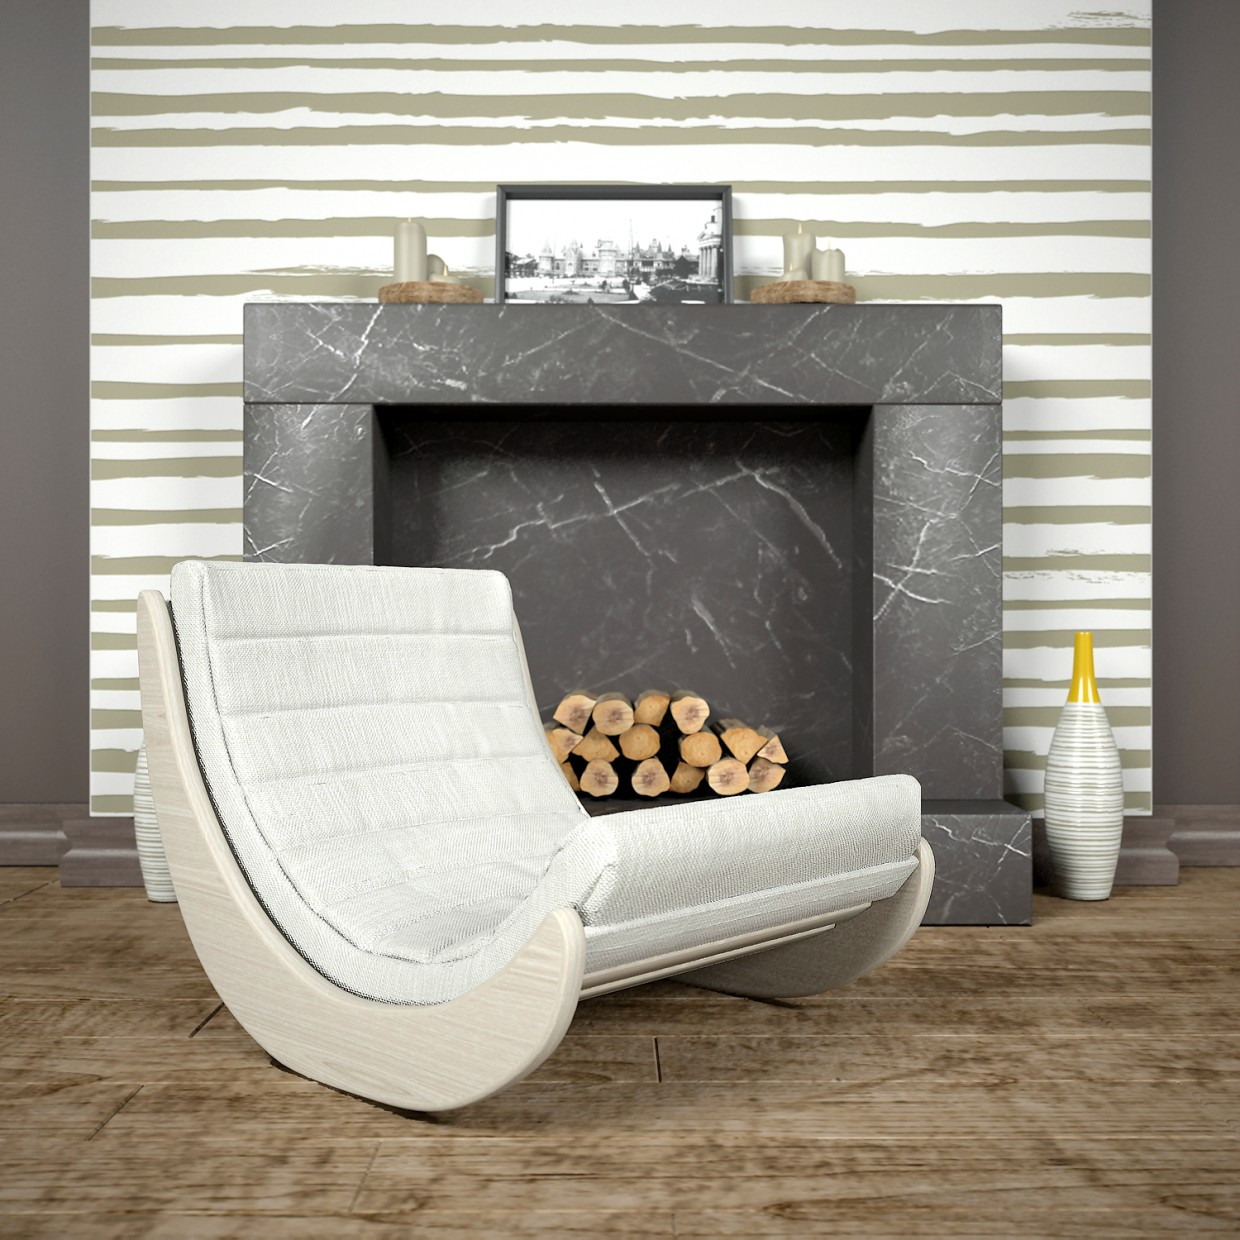 Armchair near the fireplace in 3d max vray 2.5 image